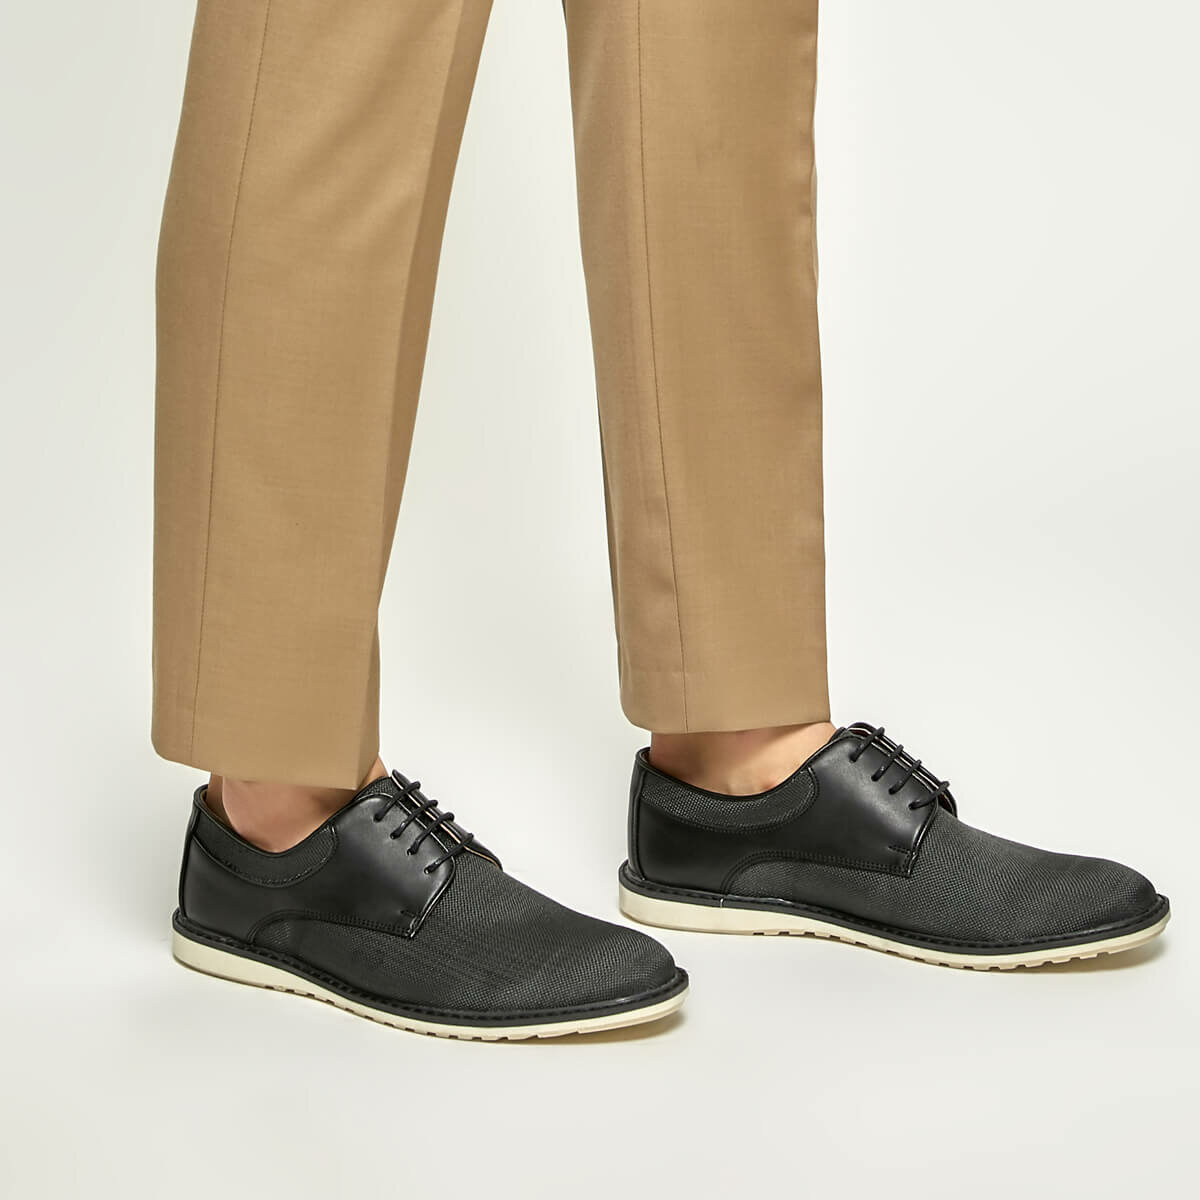 FLO 5700-1 Black Men 'S Shoes-Styles